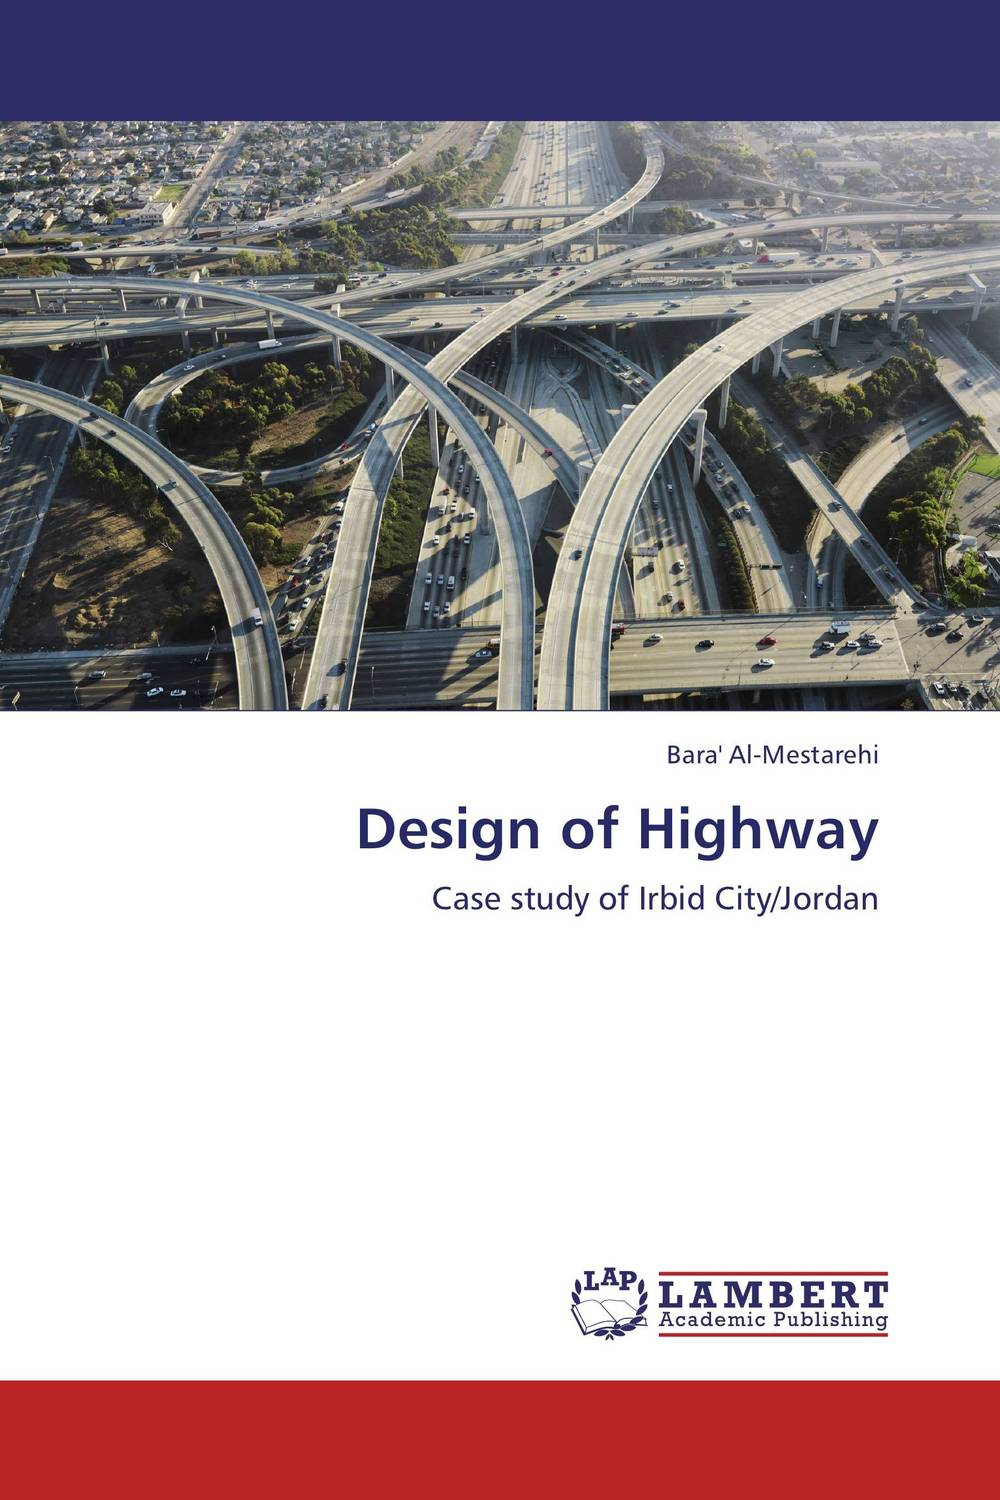 Design of Highway design consideration for motorists at urban signalize intersection